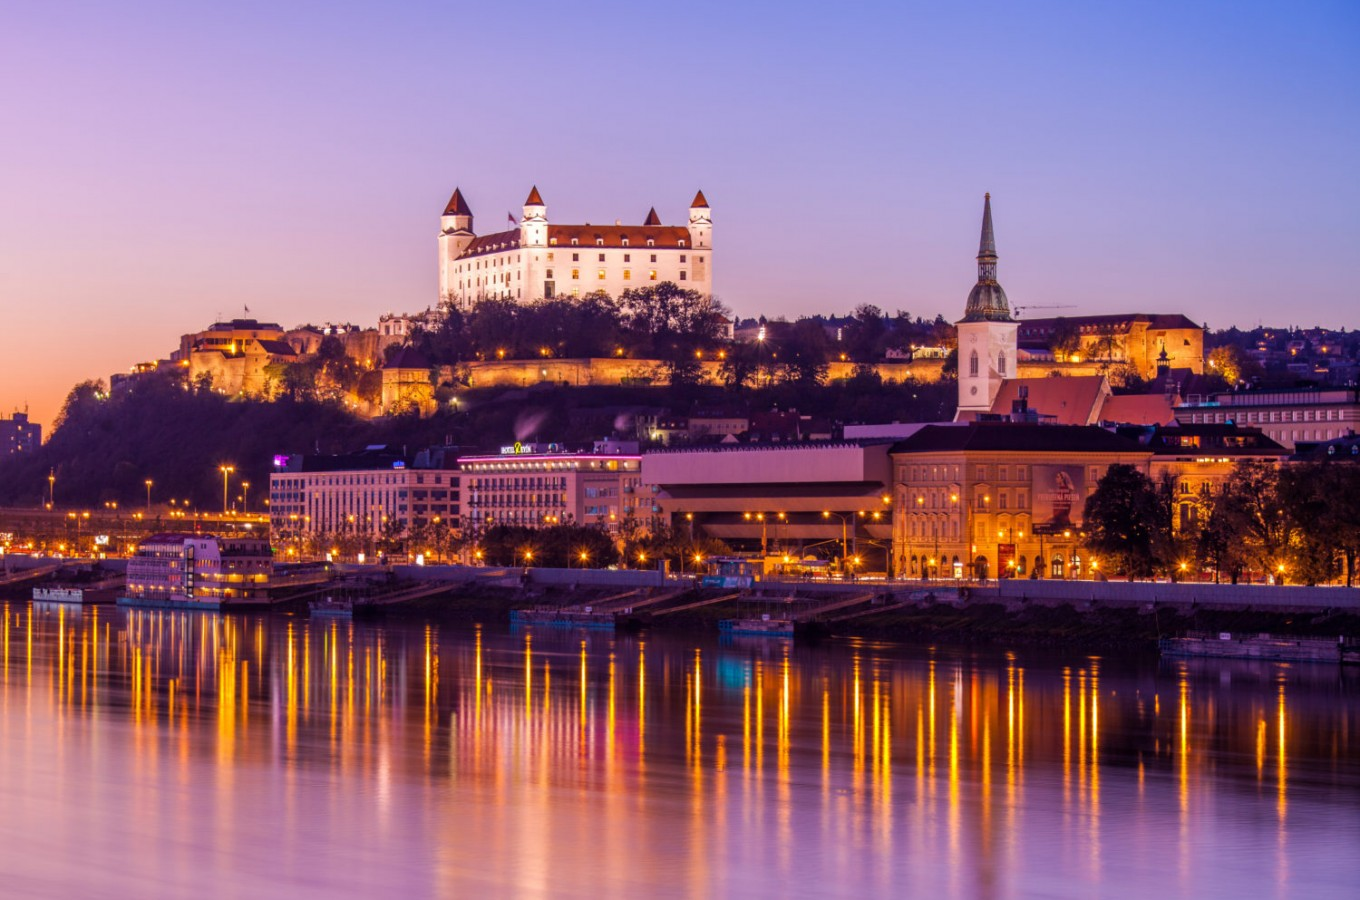 Sunset view of Bratislava Old Town and castle